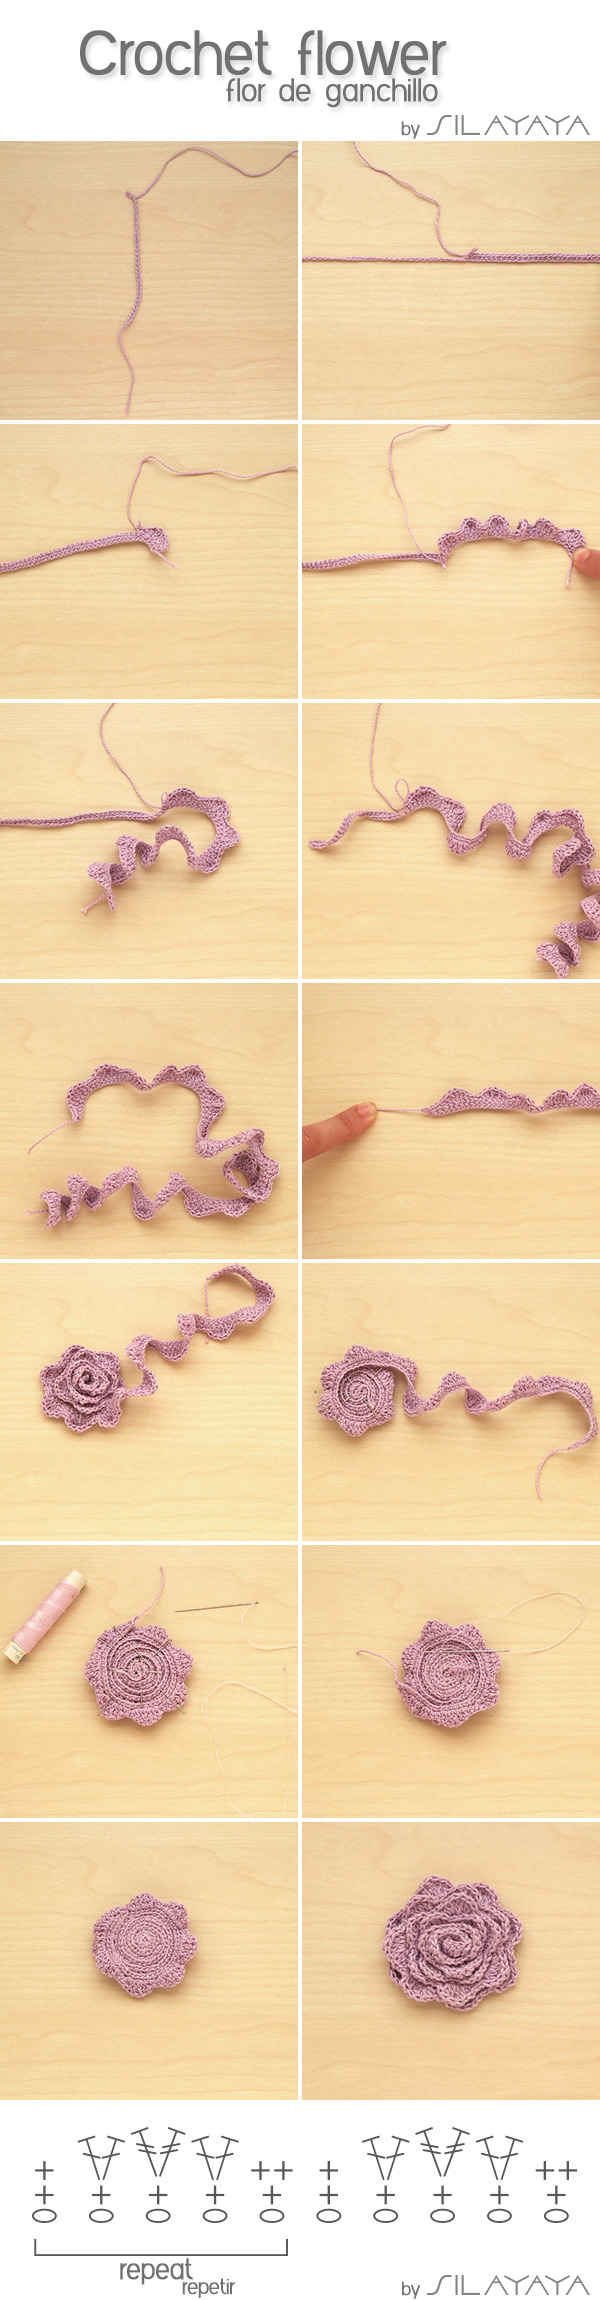 tutorial_flower_crochet